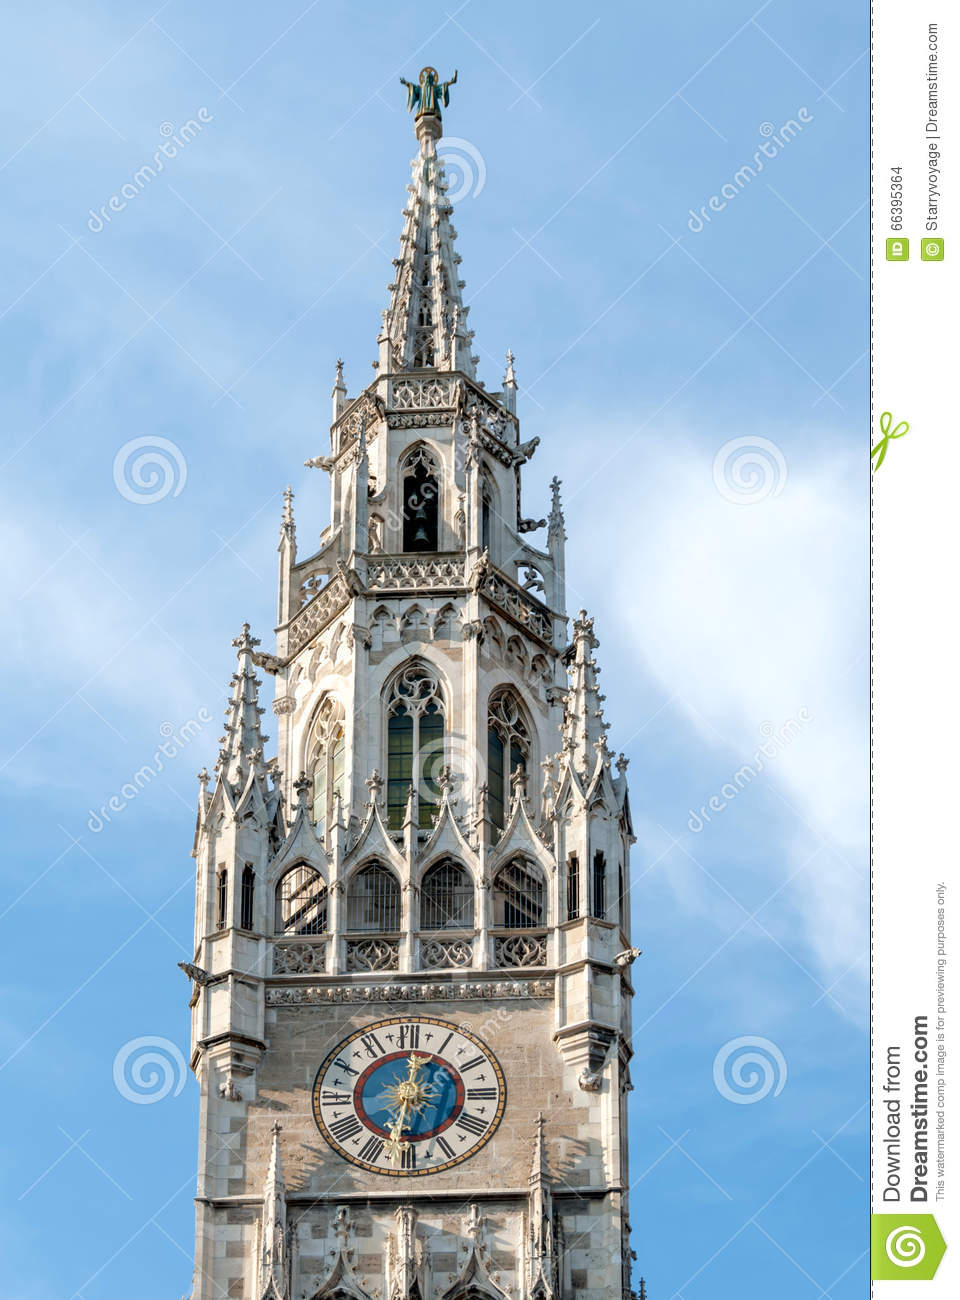 Clock Tower Of The New Town Hall Building In Munich, Germany Stock.